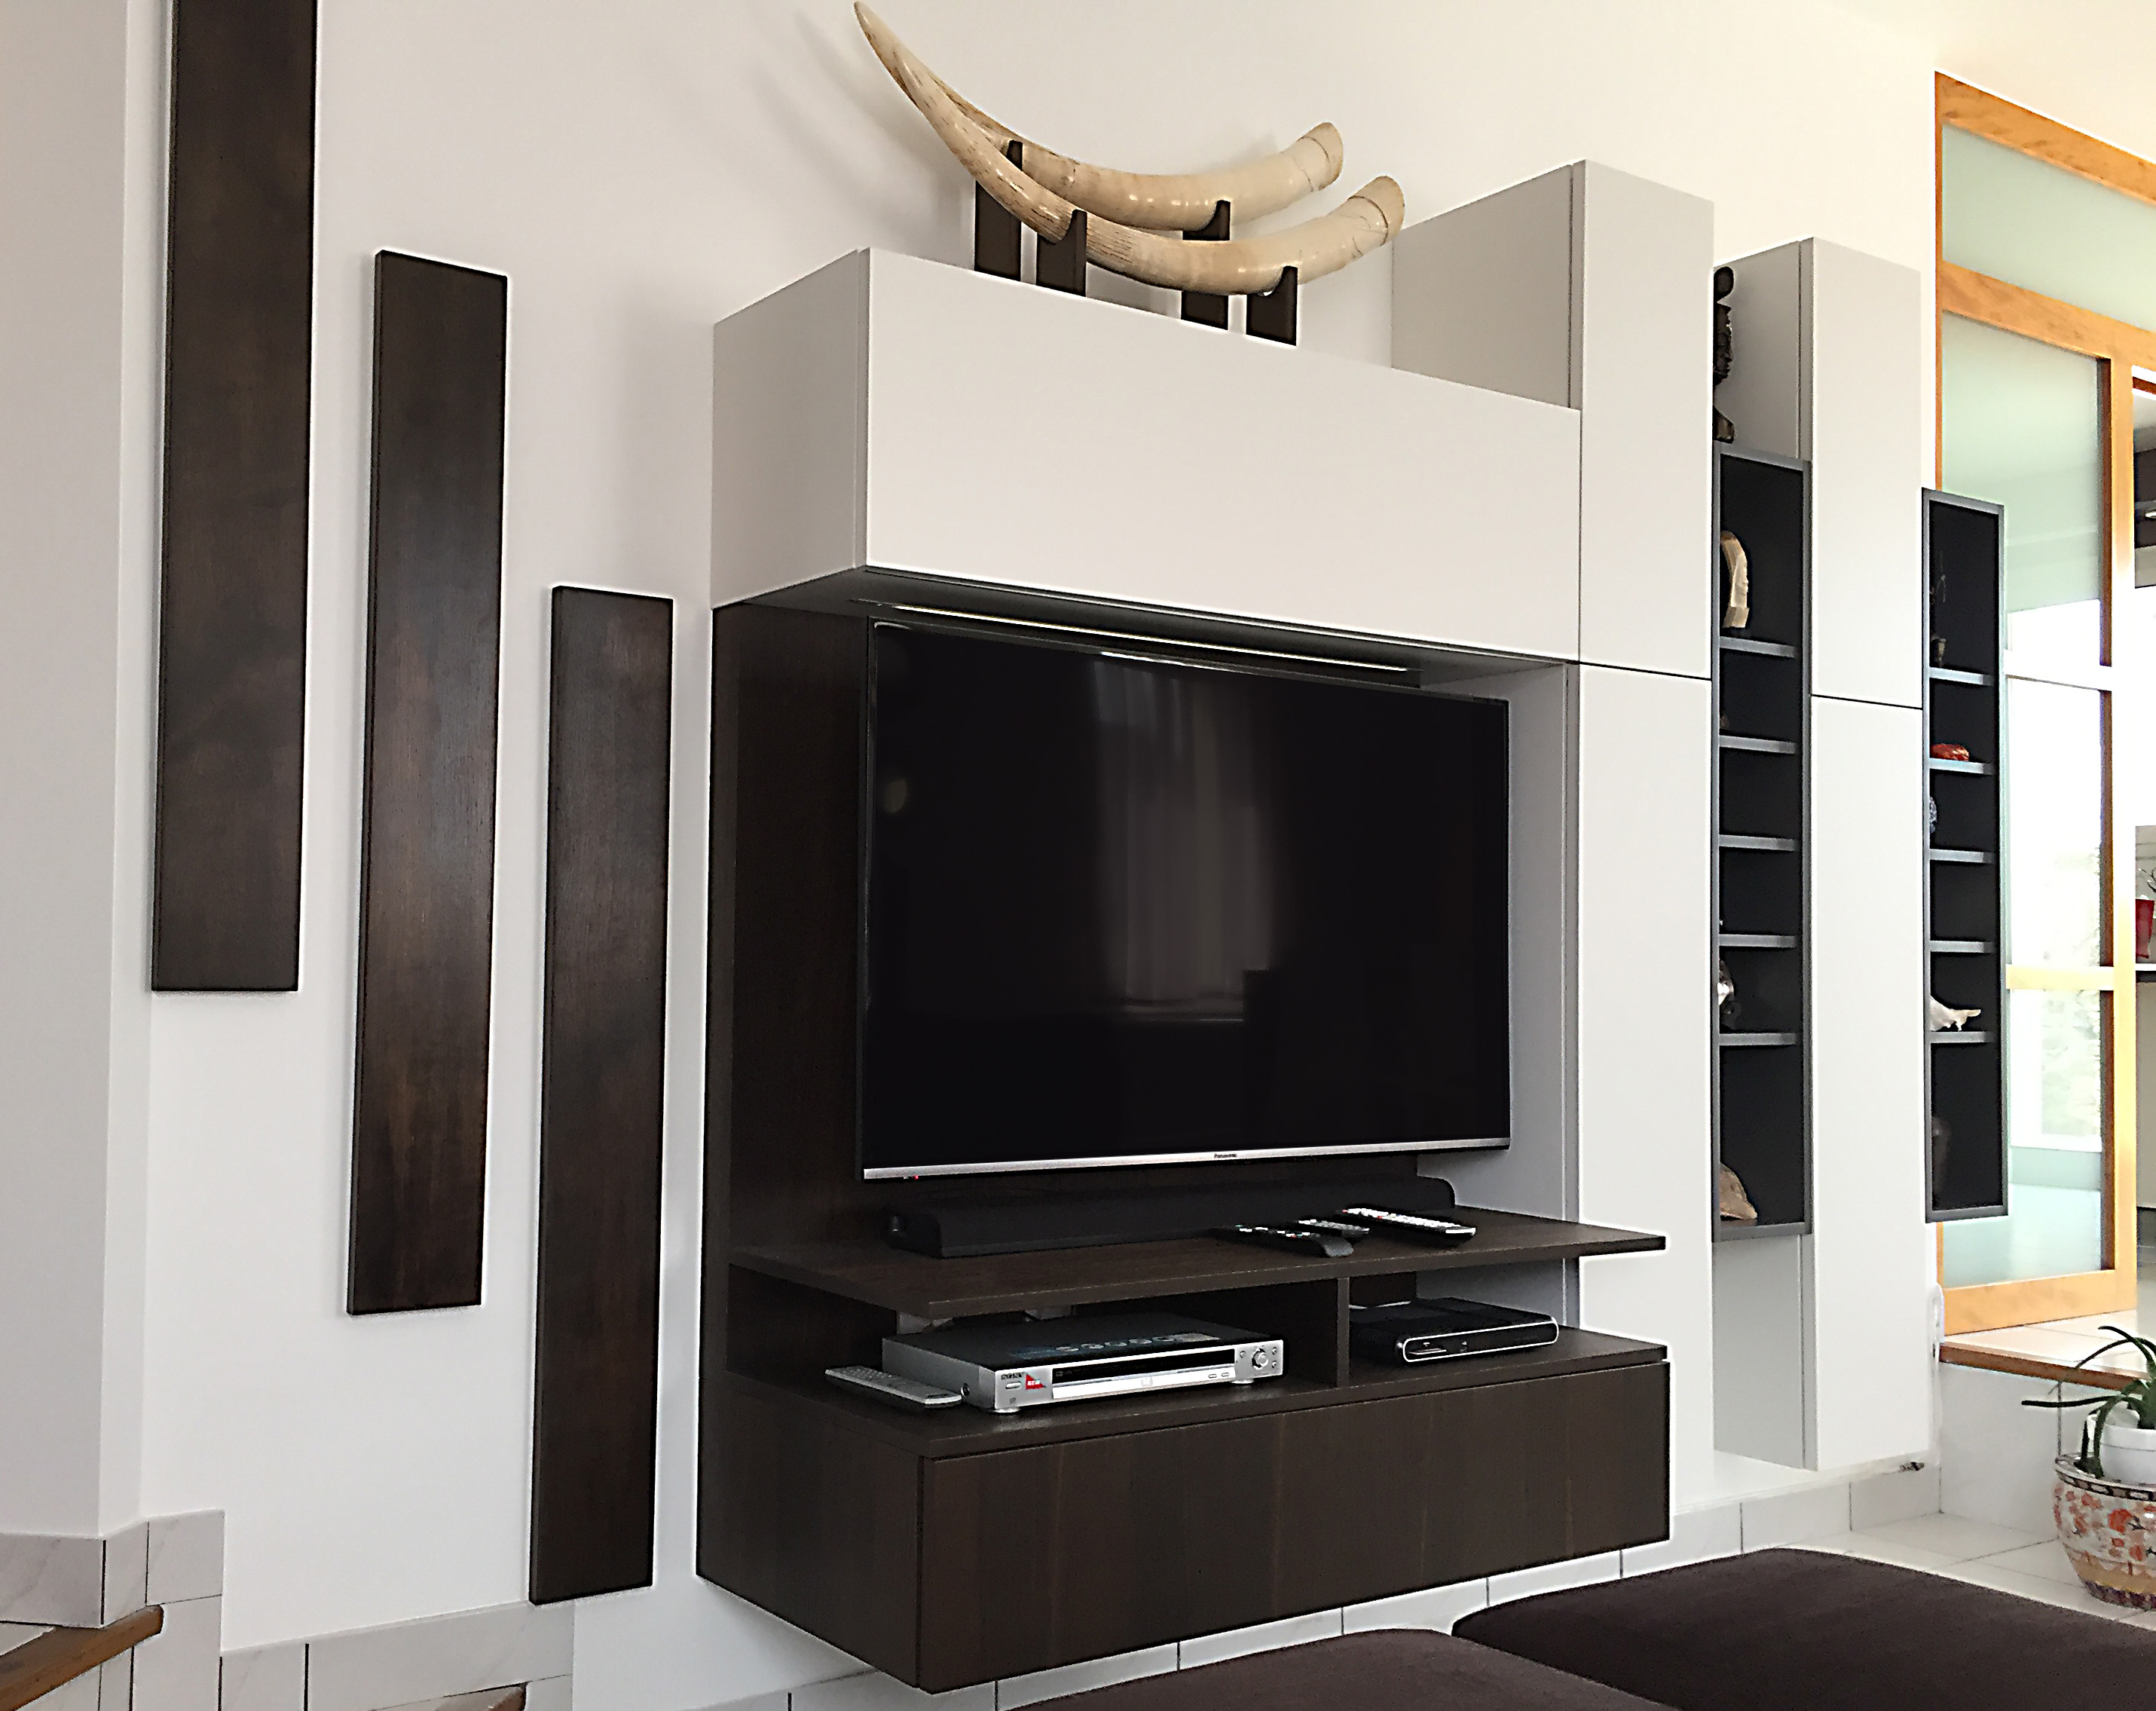 Elegant meuble tv suspendu blanc with meuble salon suspendu for Meuble salle salon